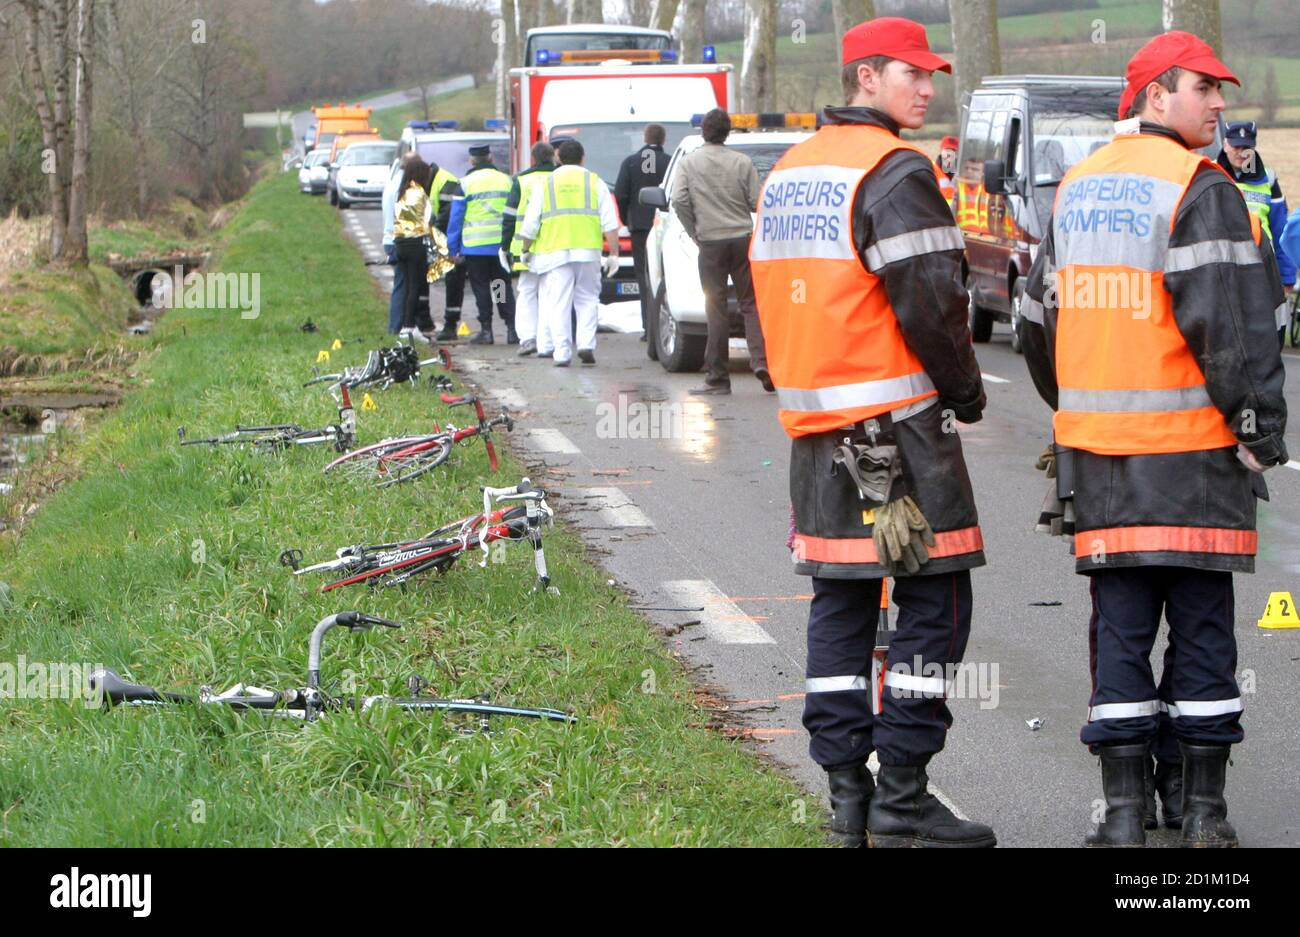 Emergency services gather at the scene of an accident where a car hit a group of 10 cyclists in Villecomtal sur Arros in southwestern France, March 8, 2009. At least one cyclist was killed and the others injured in the accident.    REUTERS/Laurent Dard  (FRANCE DISASTER) Stock Photo